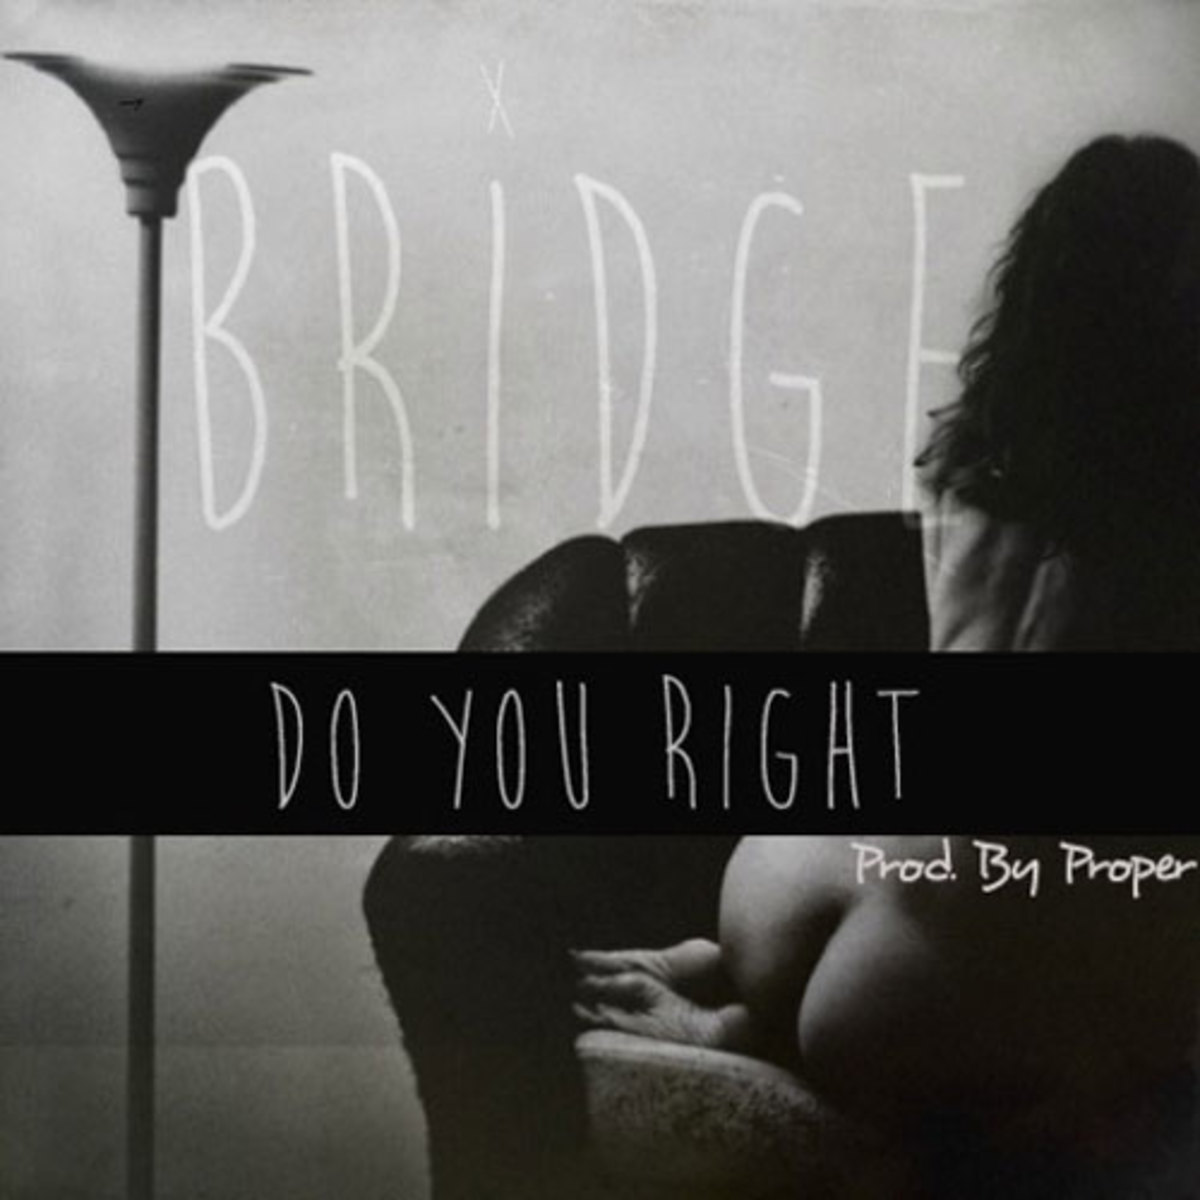 bridge-doyouright.jpg